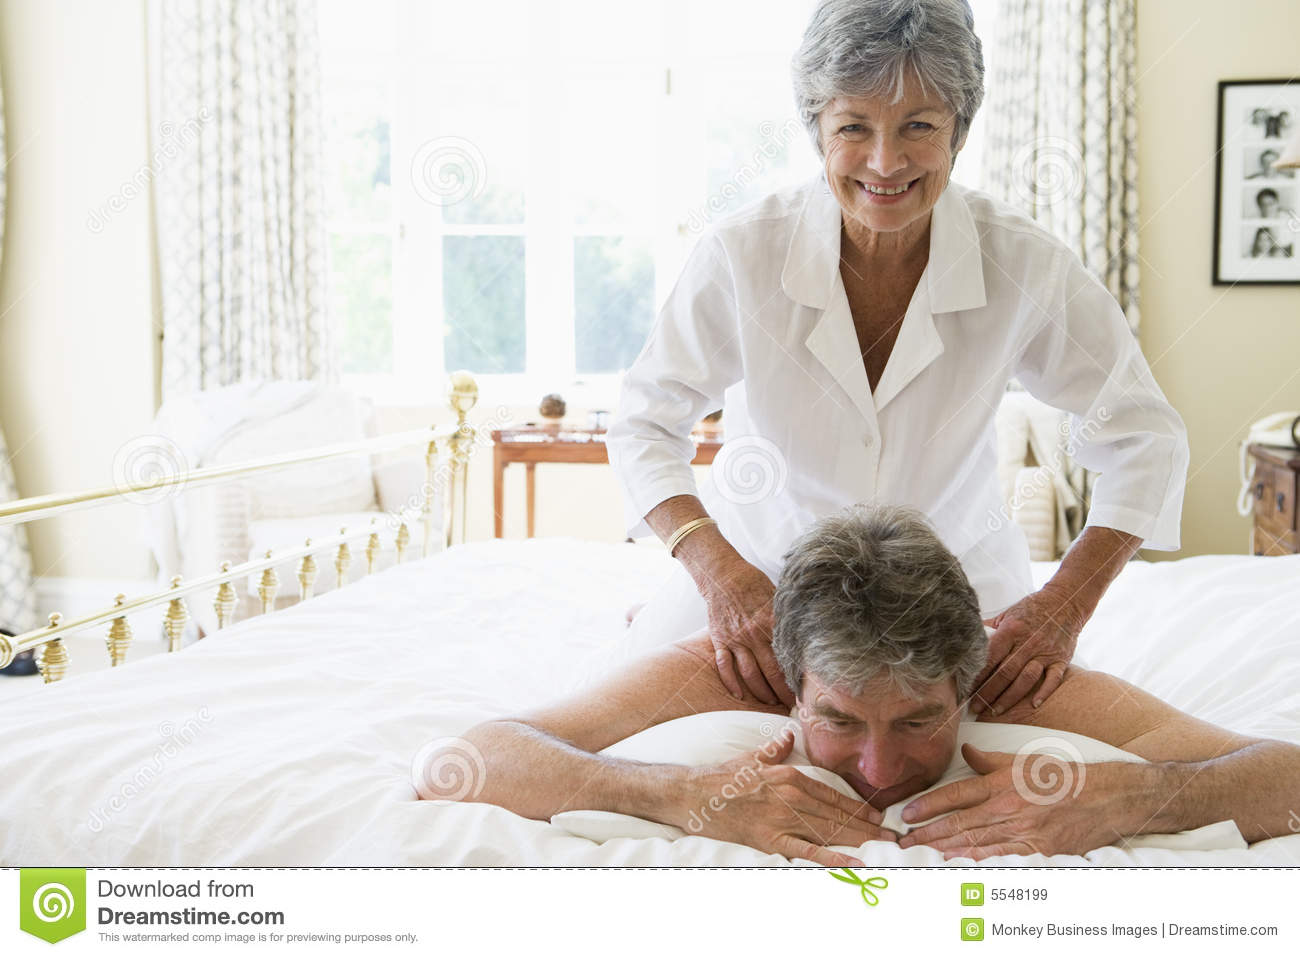 Royalty Free Stock Images: Woman giving man massage in bedroom smiling